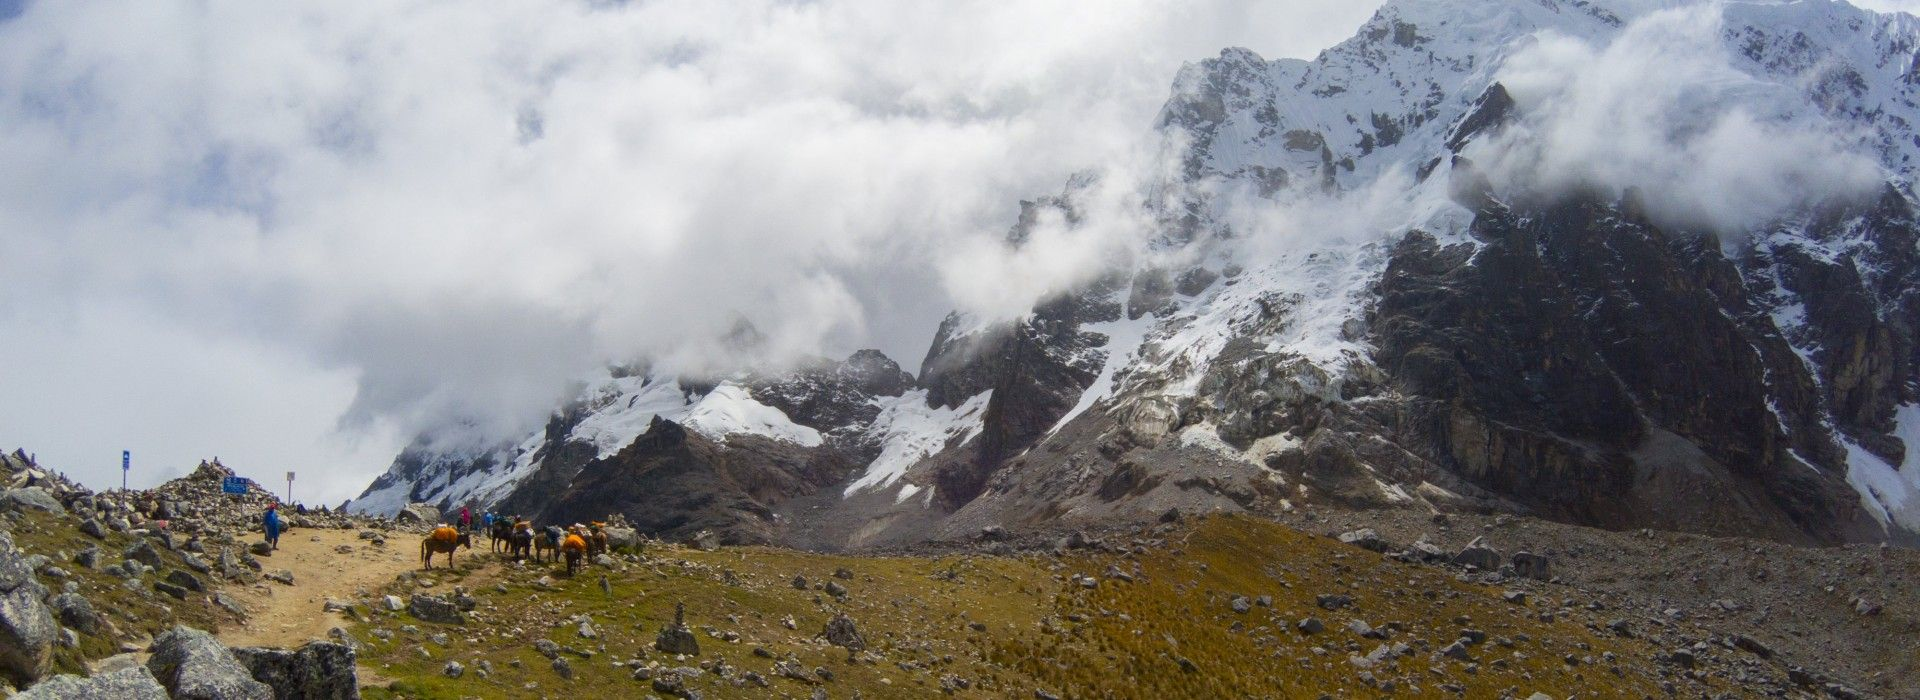 Adventure and sport activities Tours in Peru